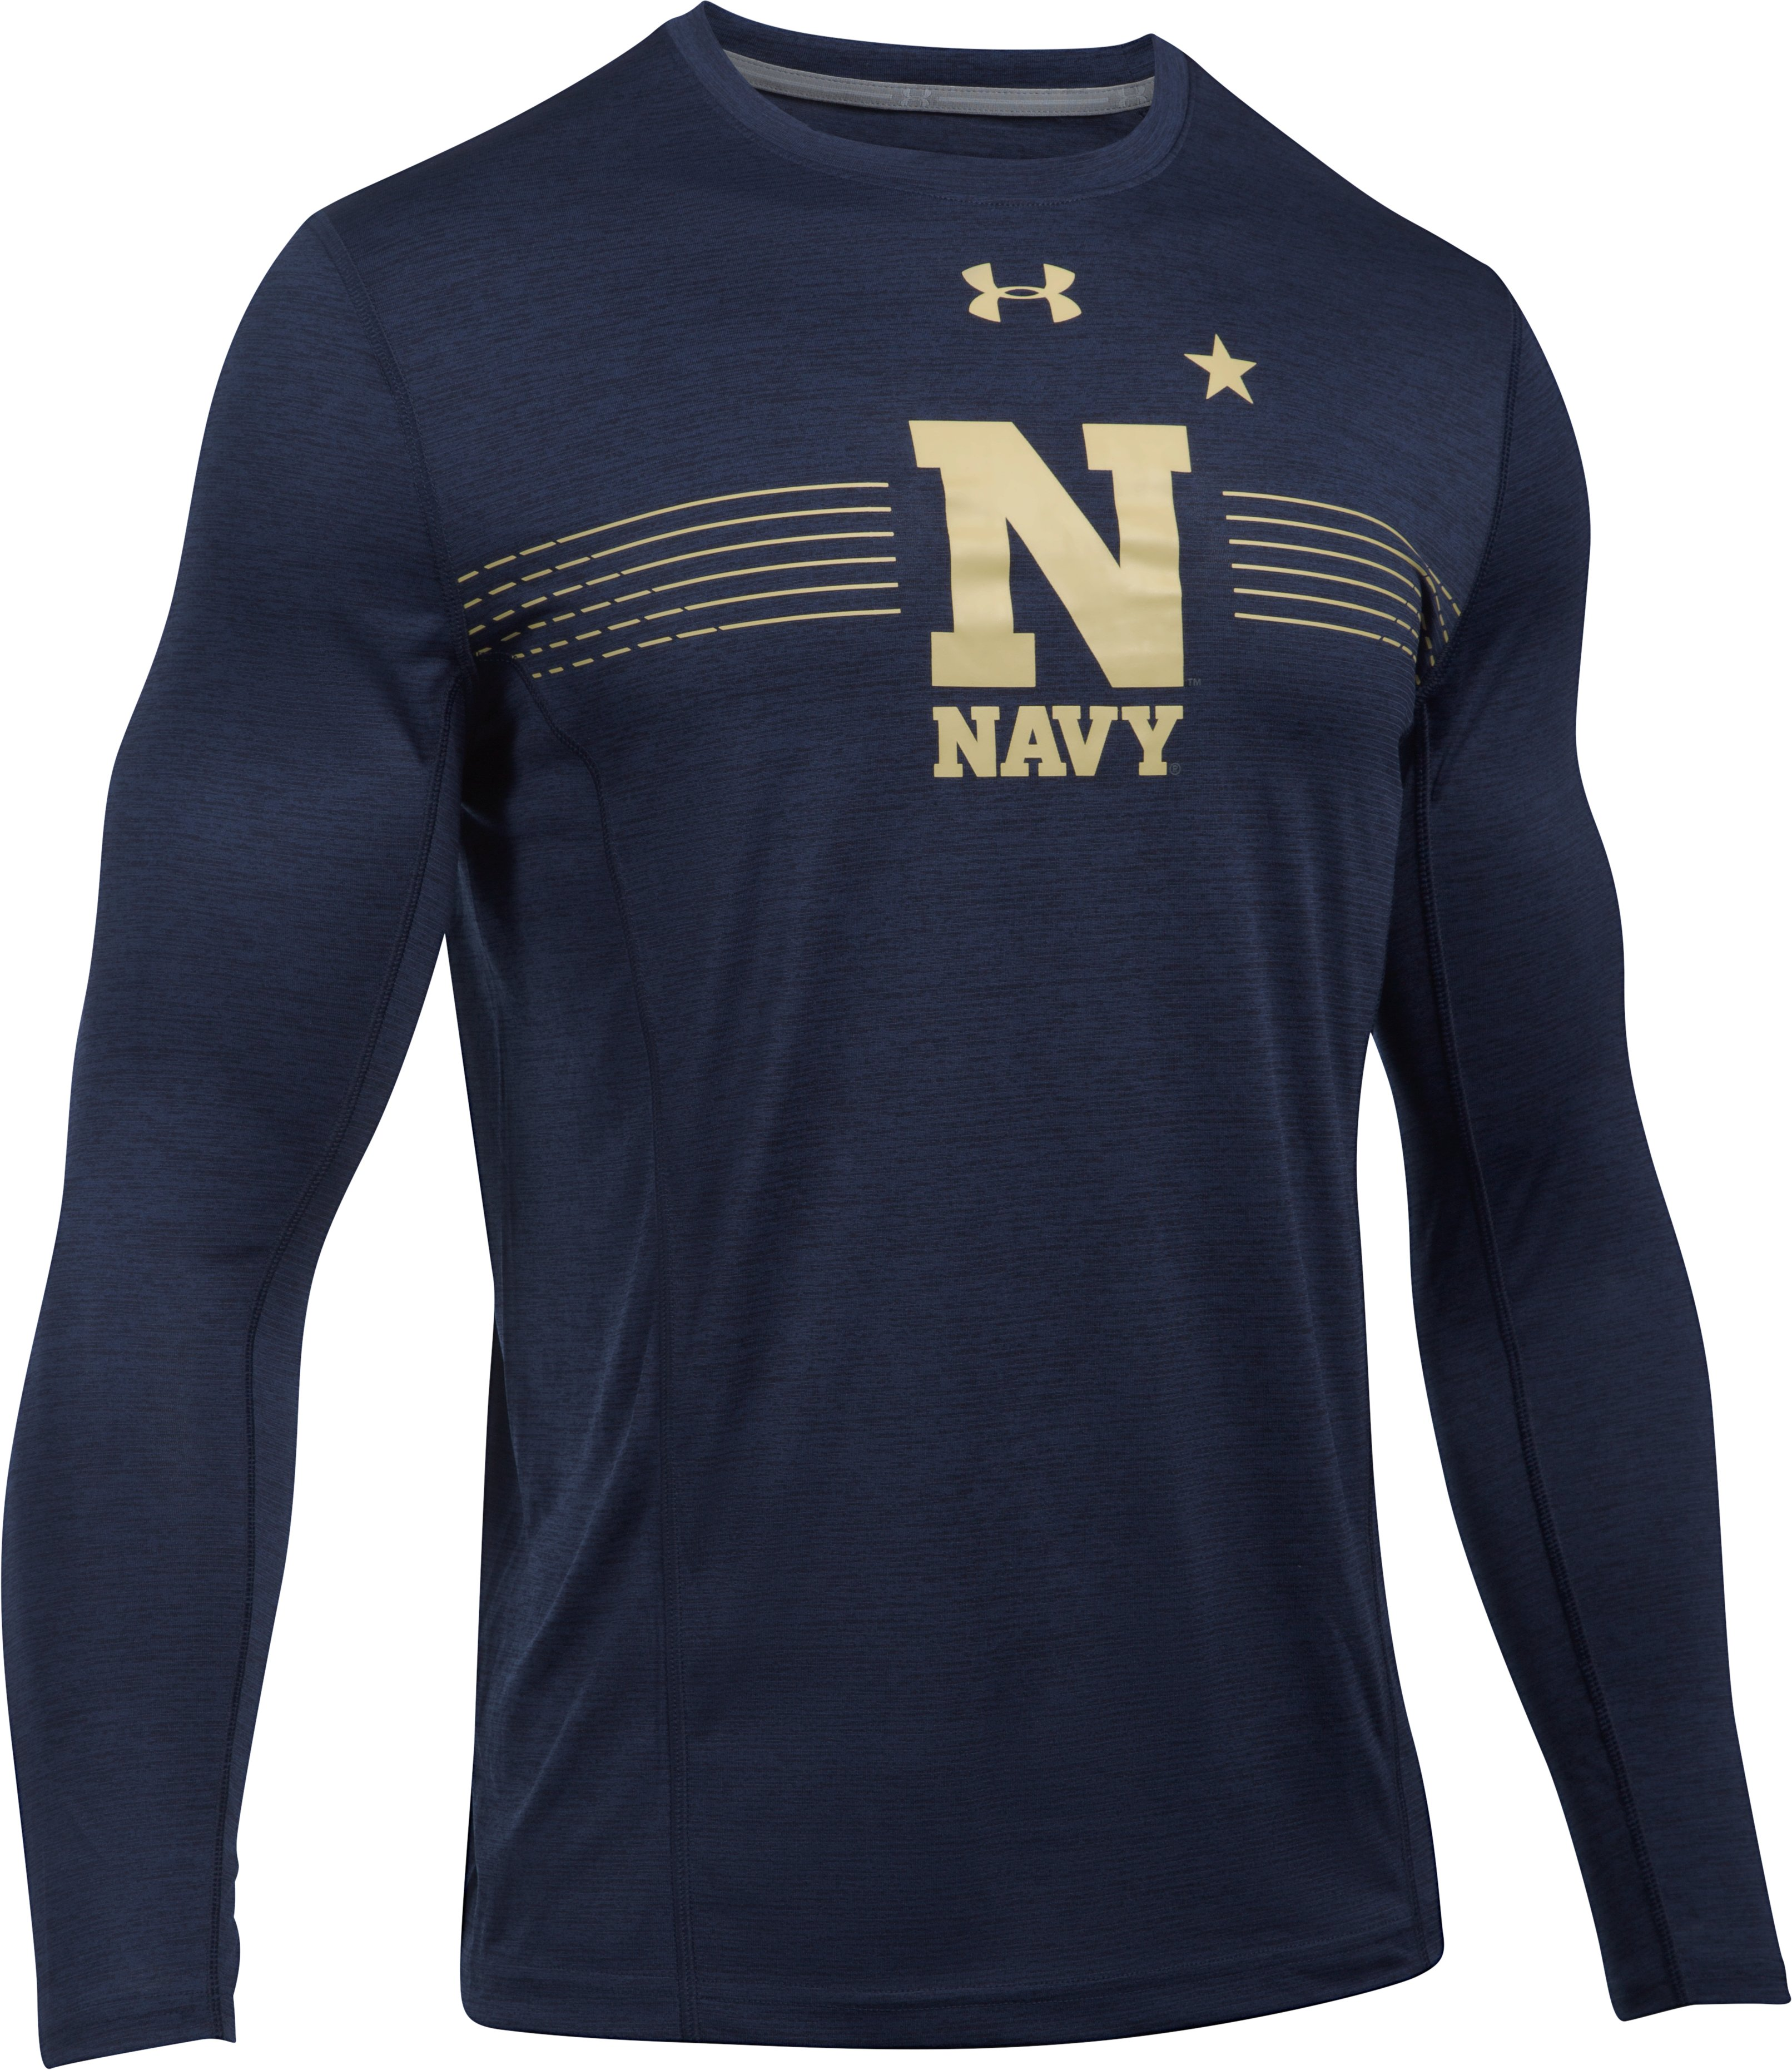 Men's Naval Academy Long Sleeve Training T-Shirt, Midnight Navy, undefined